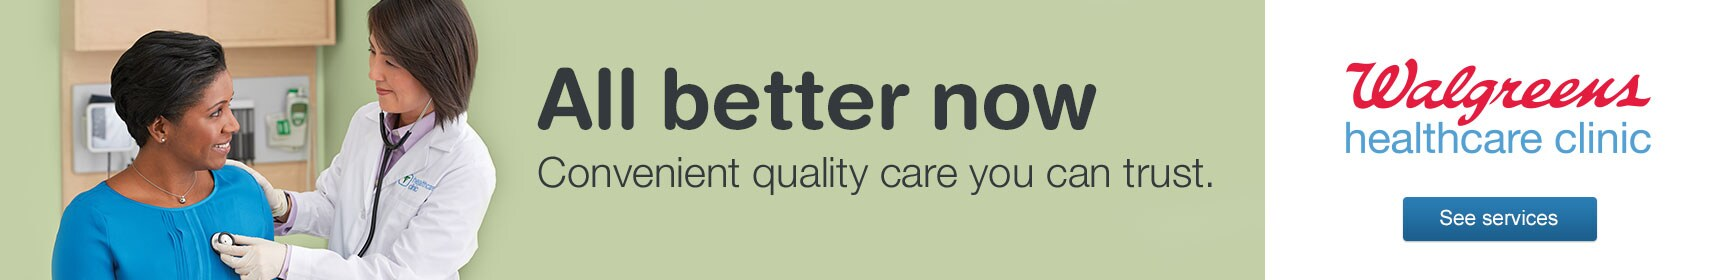 All better now. Convenient quality care you can trust. Walgreens healthcare clinic. See services.